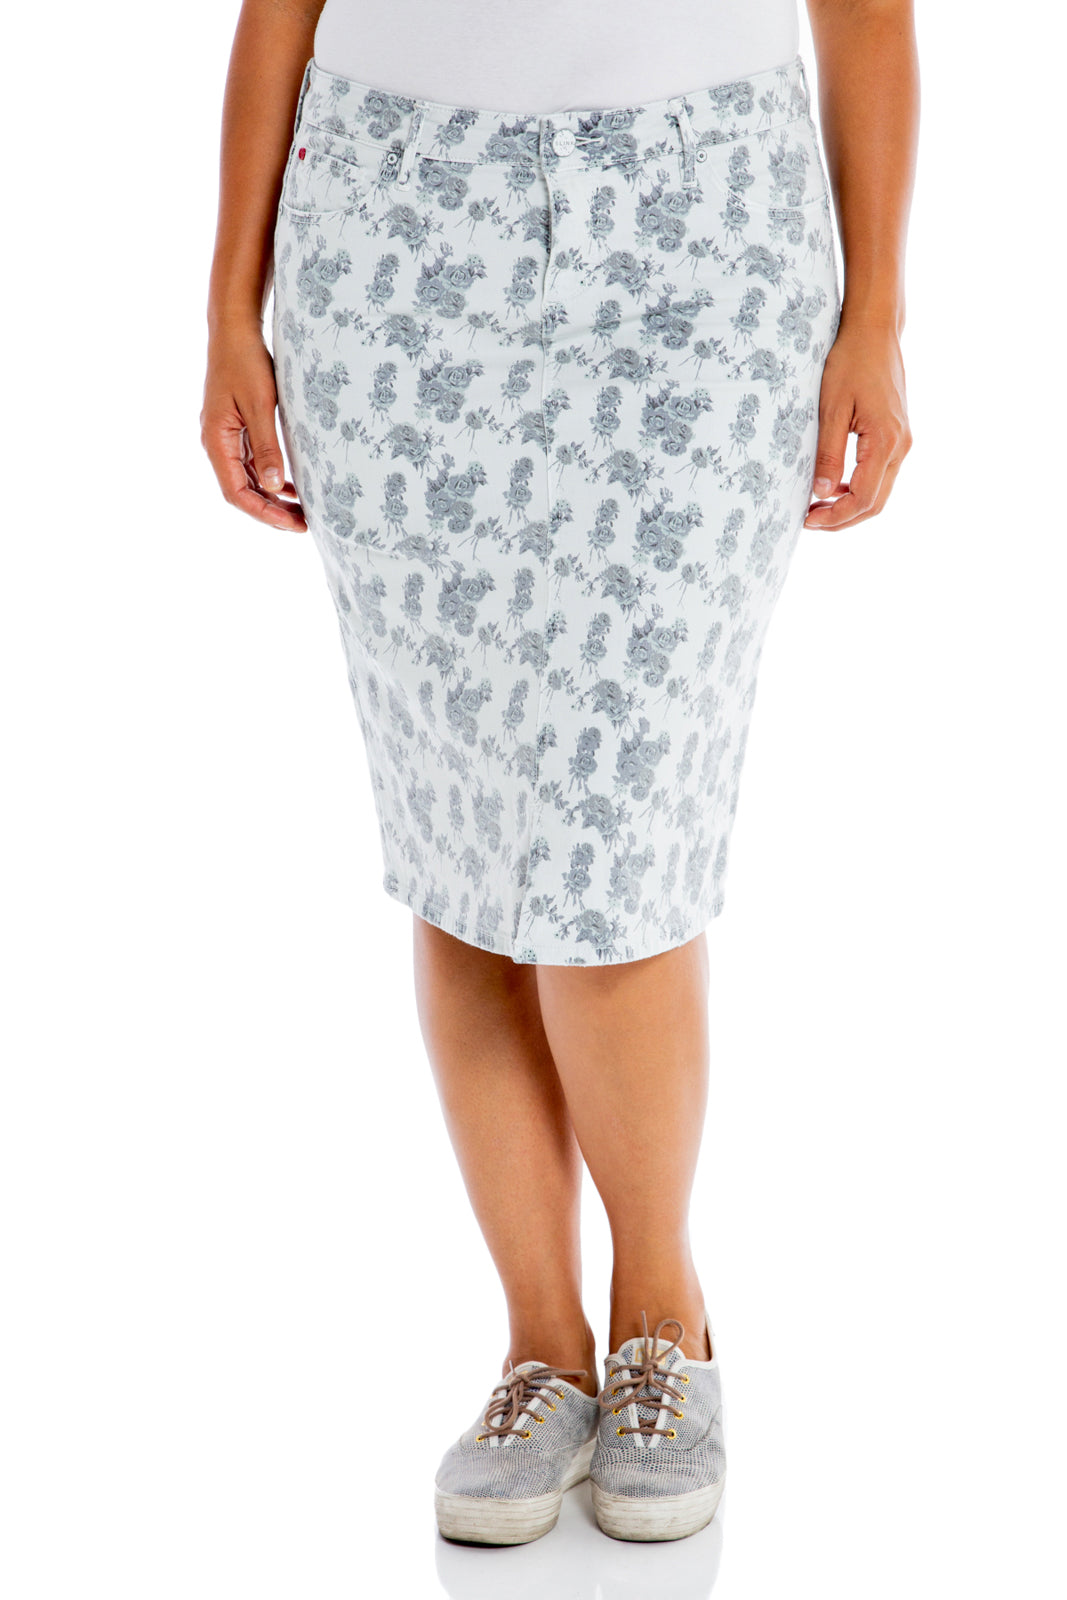 The Mid Rise Skirt - FLORAL ROSES